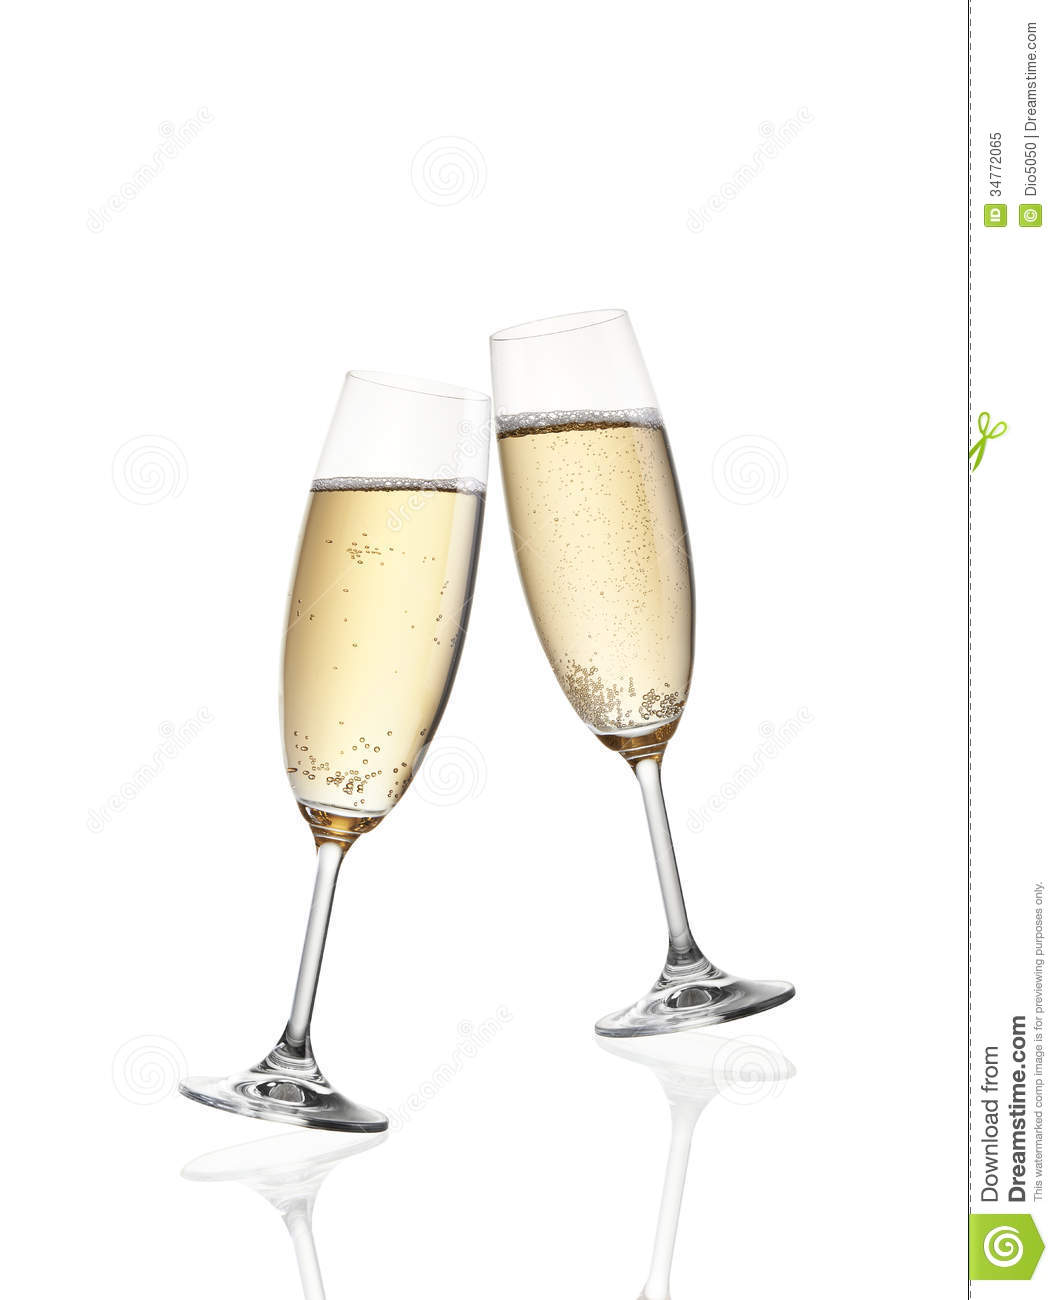 glass-celebration-toast-champagne-isolat